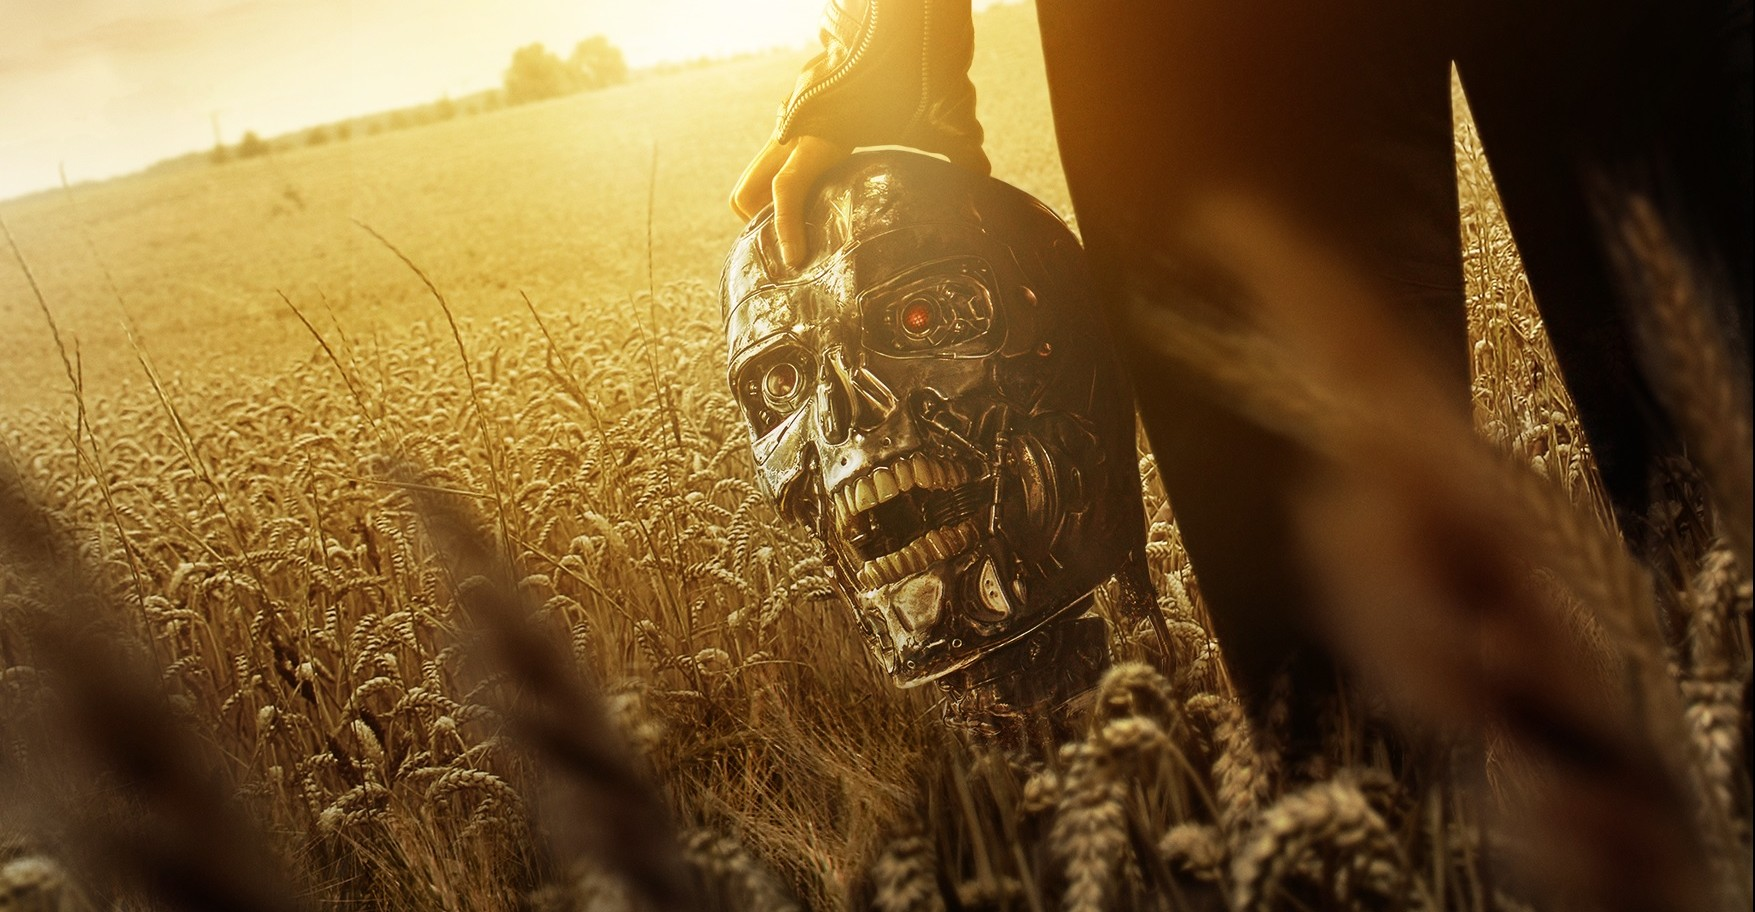 Terminator Genisys. Image courtesy of Skydance Productions